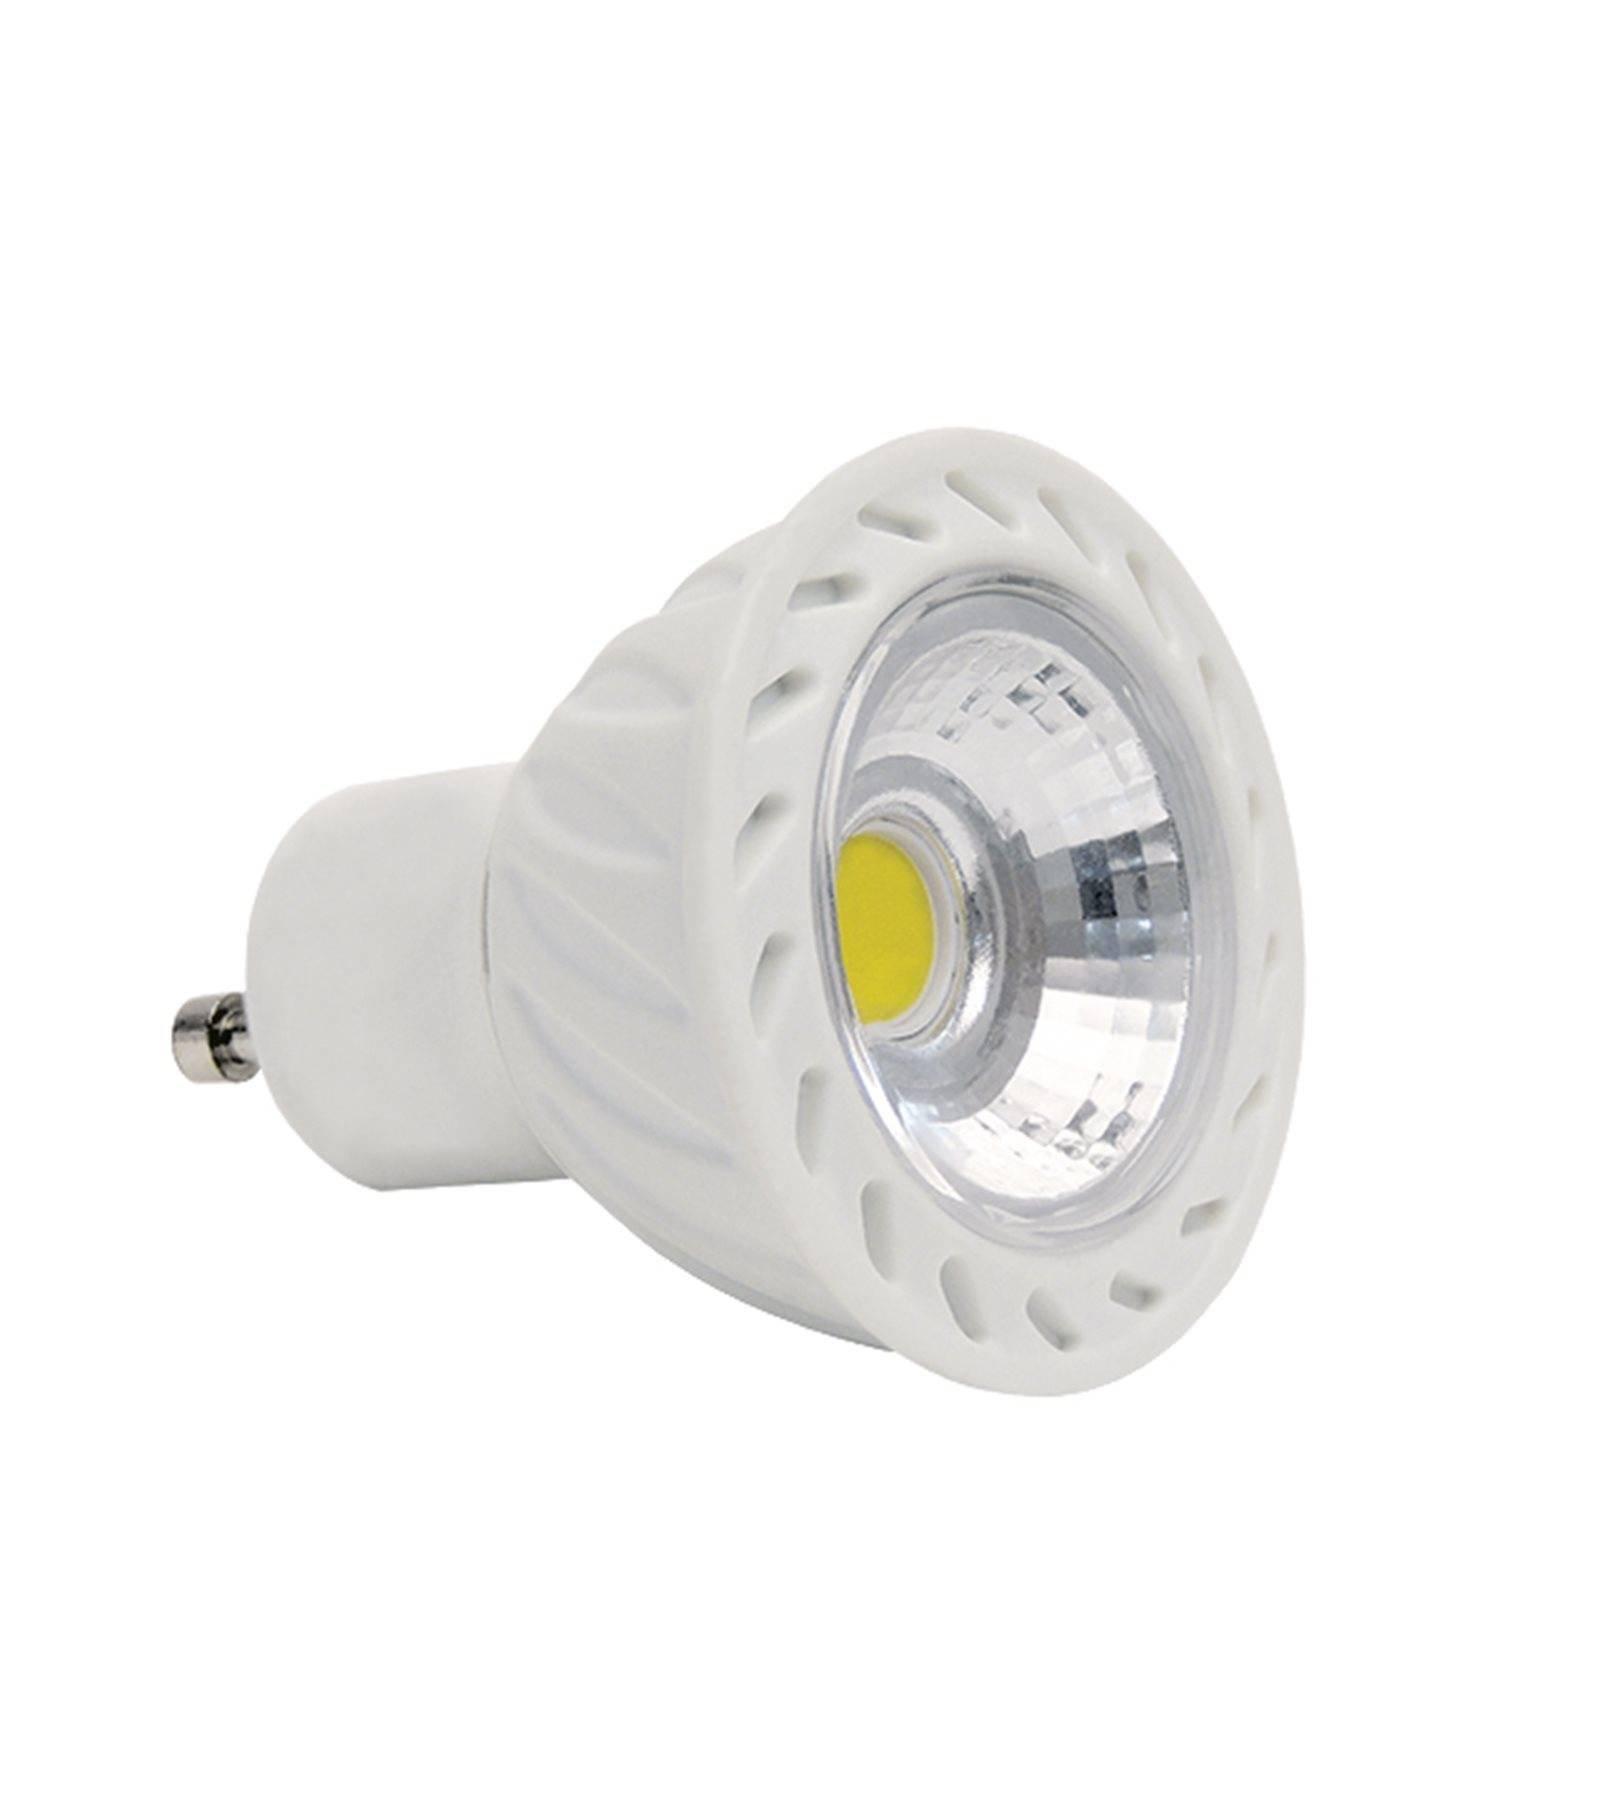 Ampoule Dimmable Ampoule Led Gu10 Dimmable Cob 7w 500lm équiv 42w Blanc